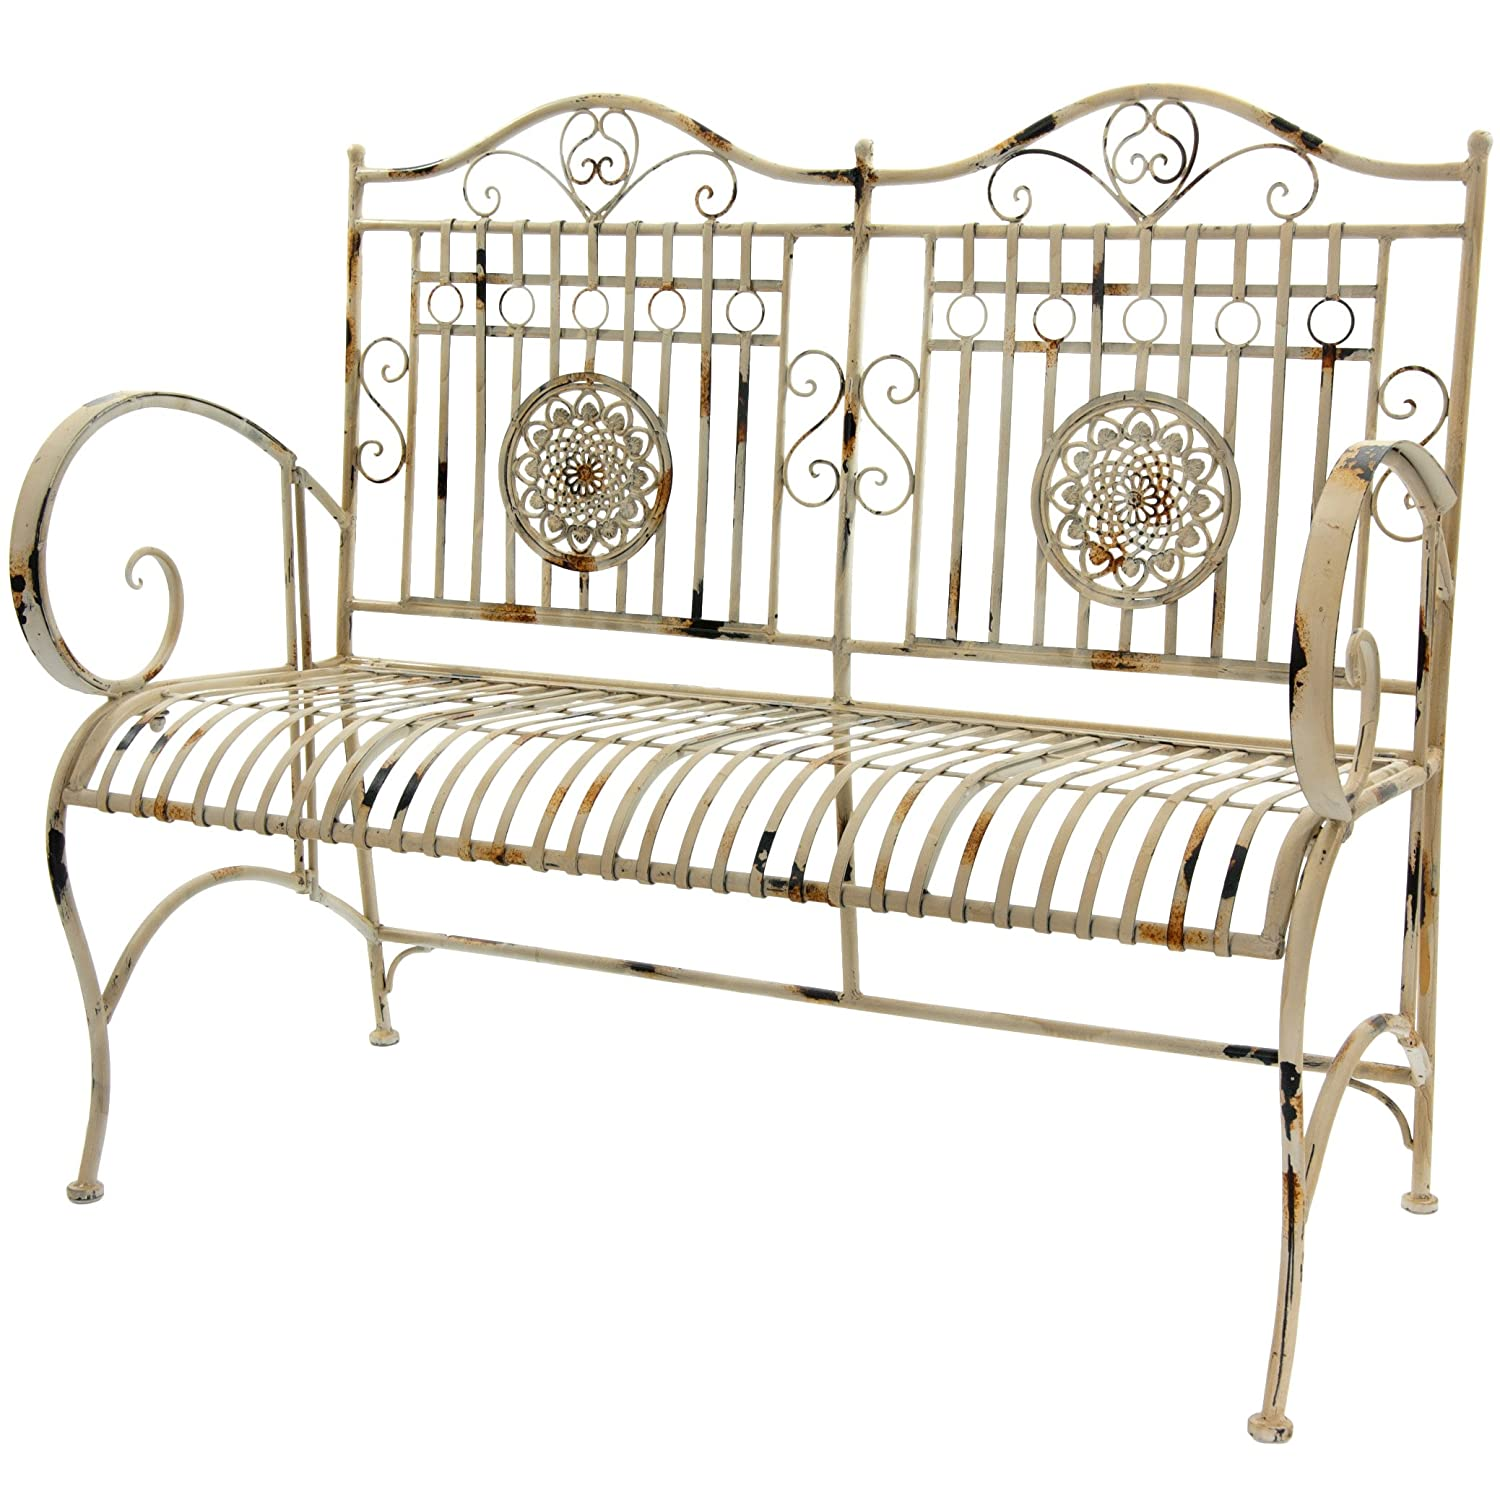 Amazon Com Oriental Furniture Rustic Metal Garden Bench